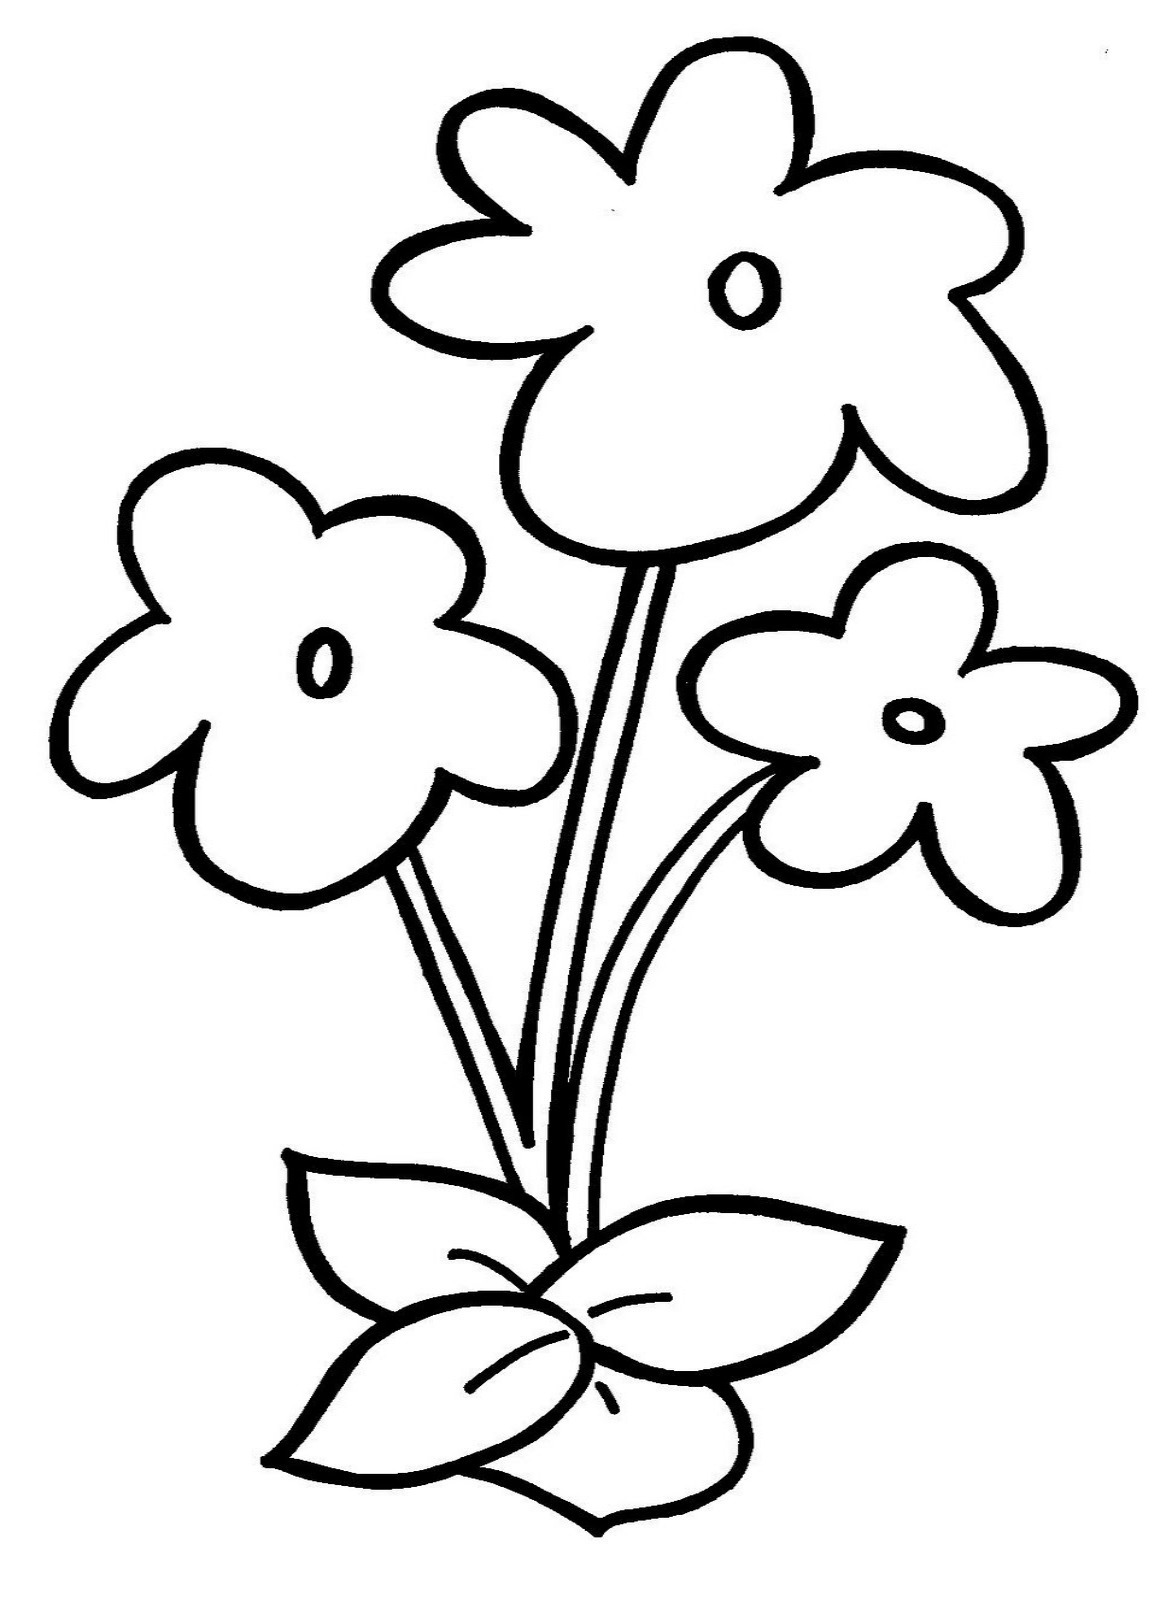 childrens coloring pages flowers flowers coloring pages for kids printable 6 coloing flowers childrens pages coloring